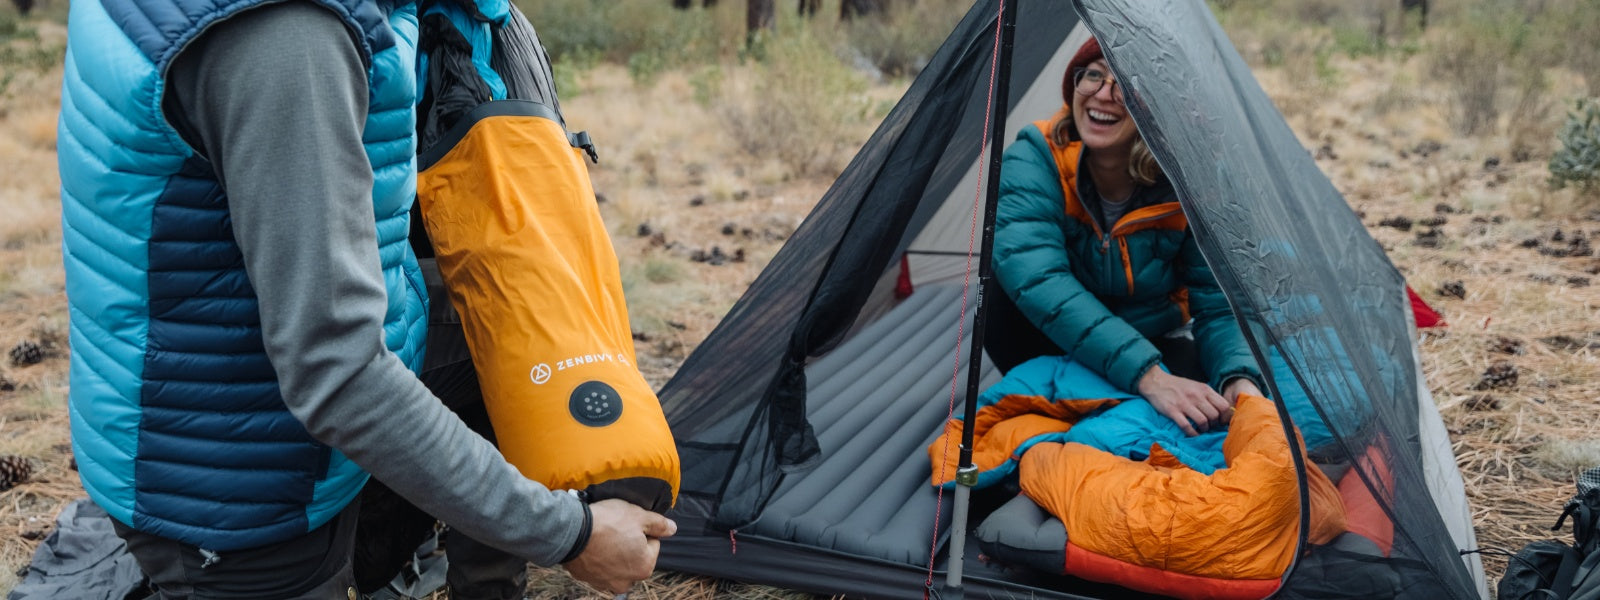 This is no ordinary stuff sack. The Zenbivy Dry Sack features fully-welded seams for a watertight seal you can trust, instant compression through its patent pending quick Air Dump Valve, and durable yet lightweight construction.